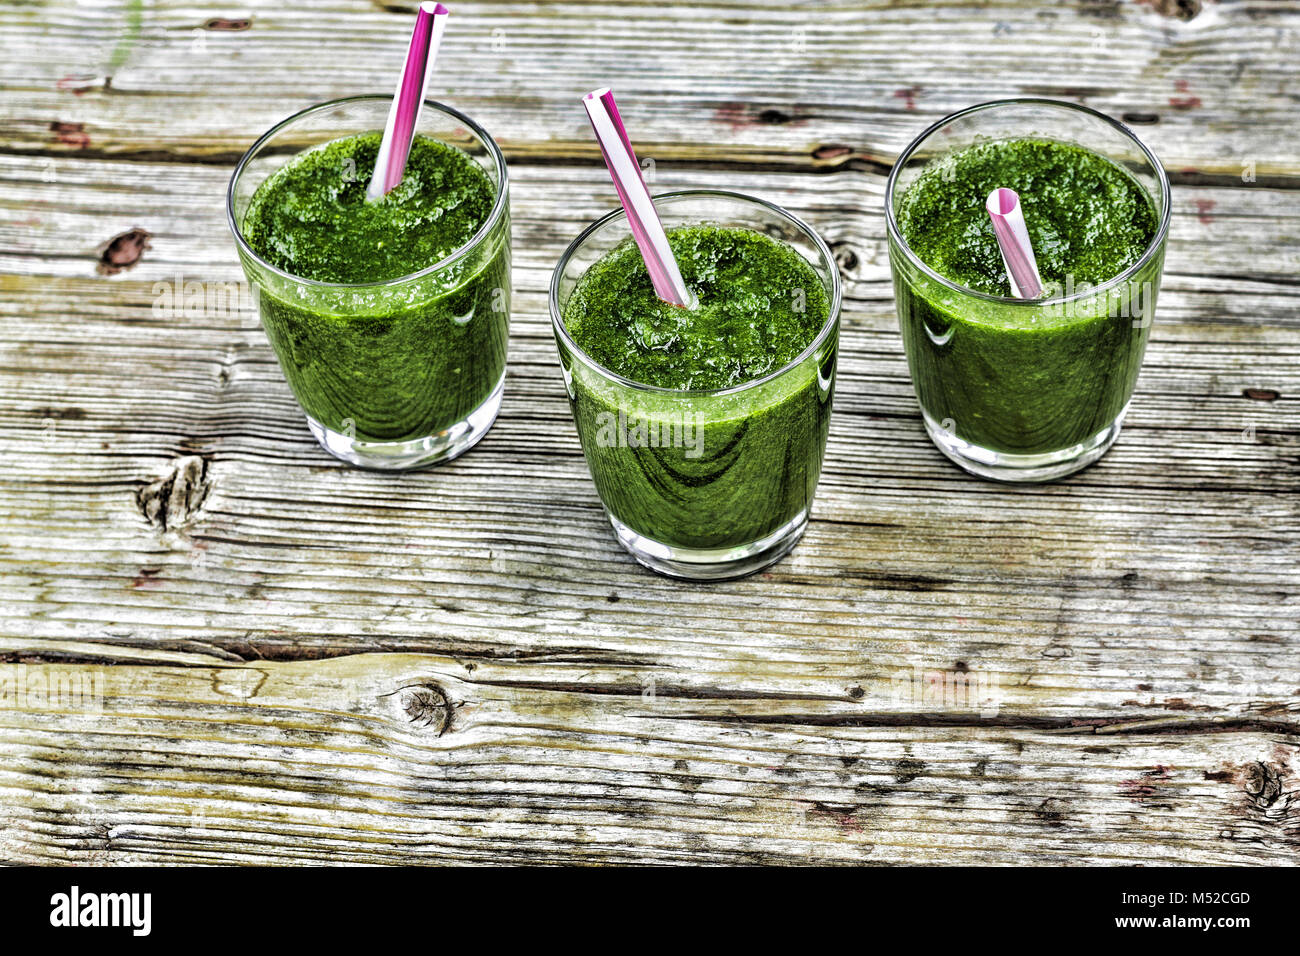 Detox drink from spinach and various green vegetables Stock Photo